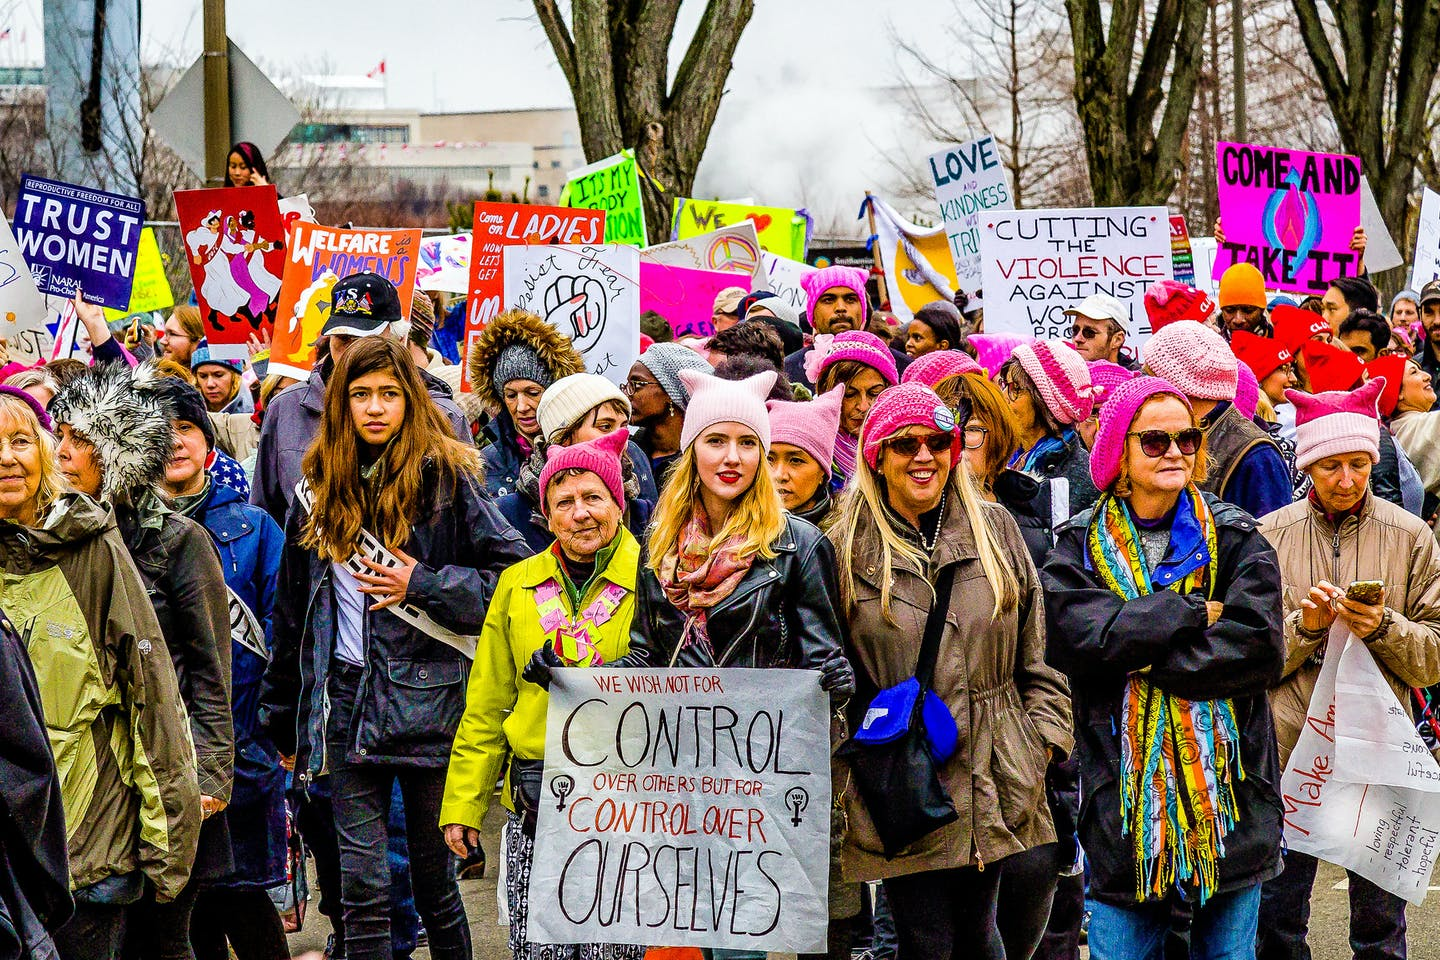 Women's March on Washington. Female investors are more likely to factor sustainability into their investment decisions. Image: